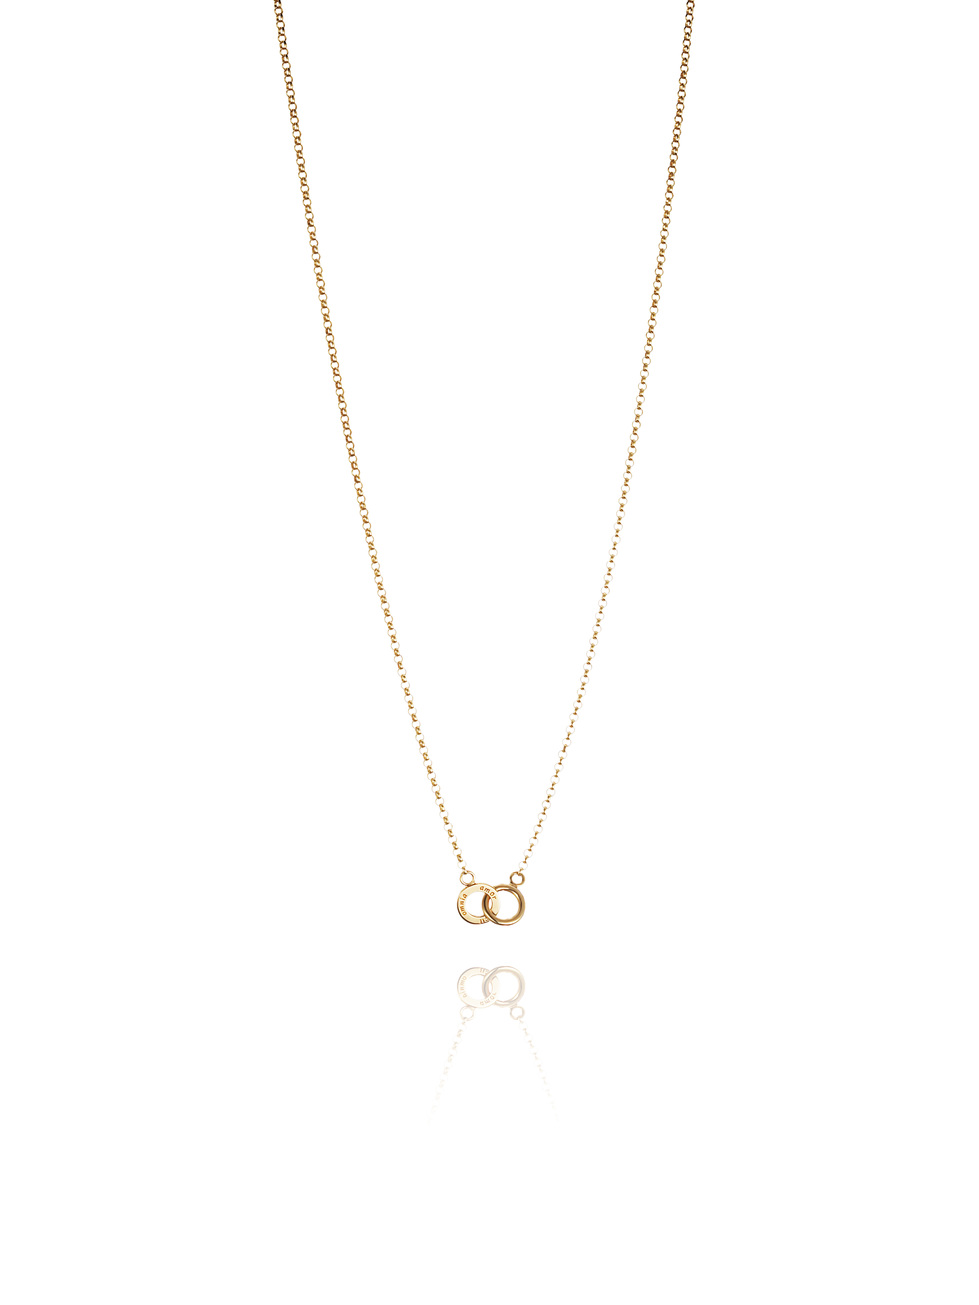 Mini Twosome Necklace 10-101-00565(2)